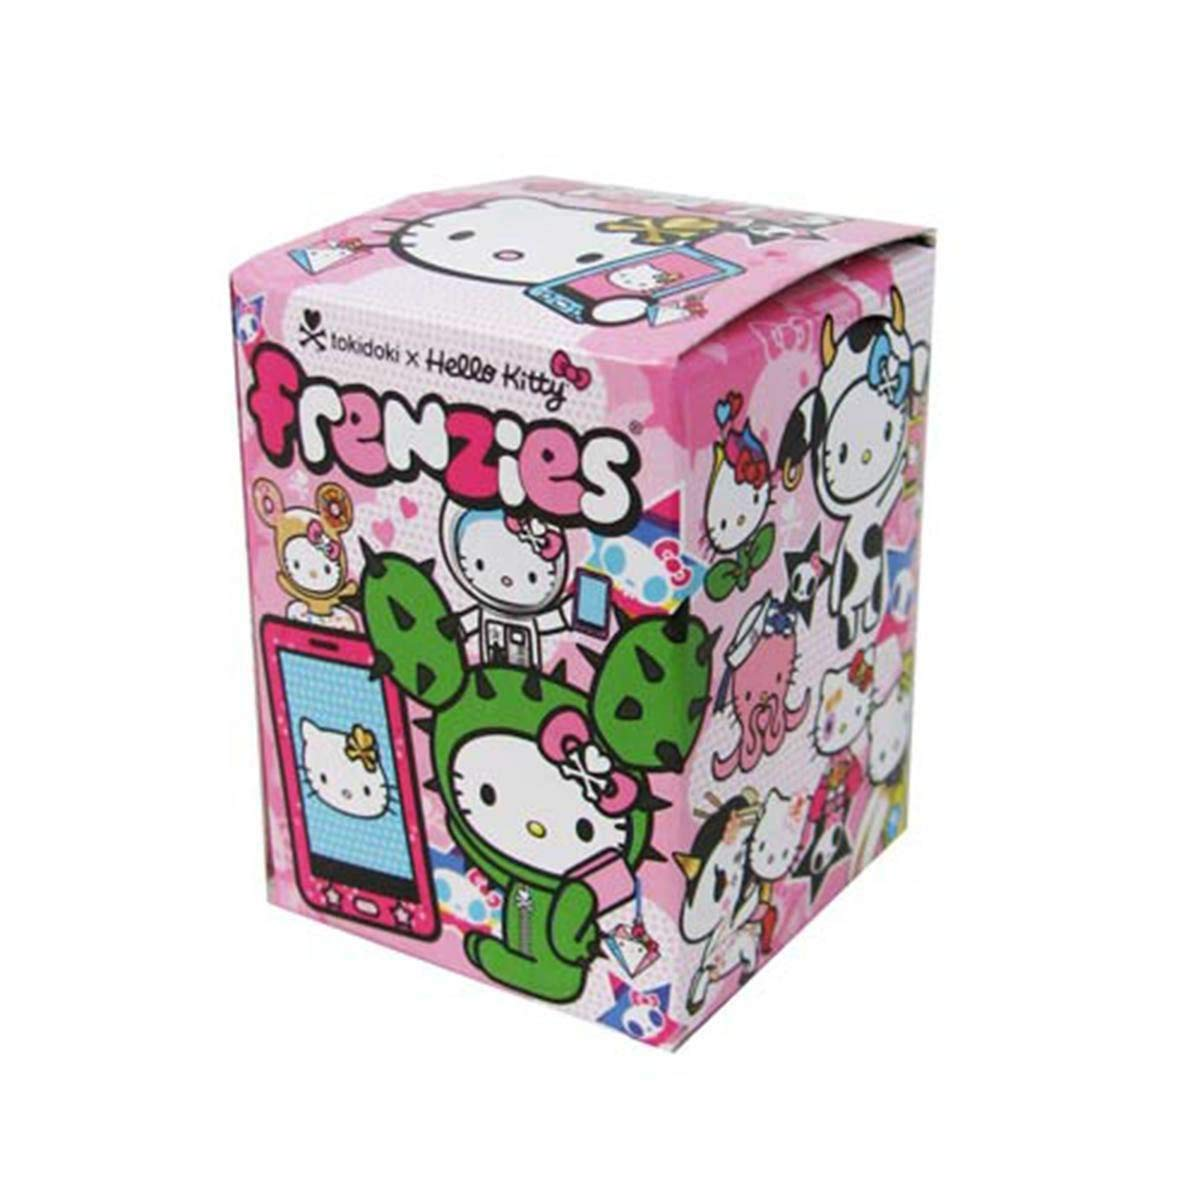 Flower Tokidoki X Hello Kitty Frenzies Vinyl Mini-Figure